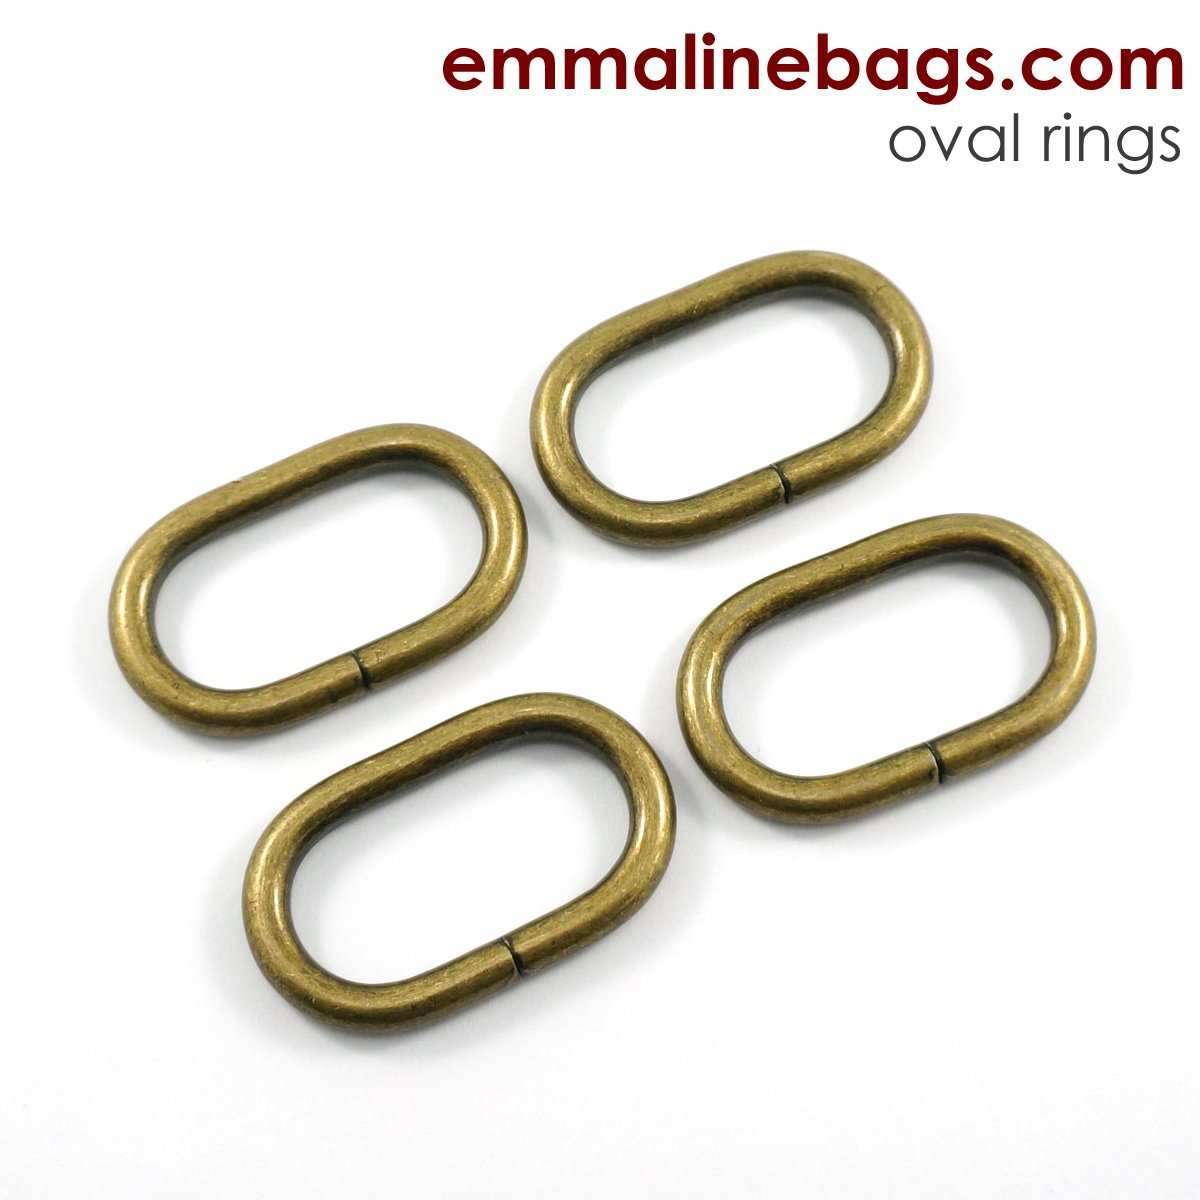 1-1/4 OVAL ANTIQUE BRASS O-RINGS